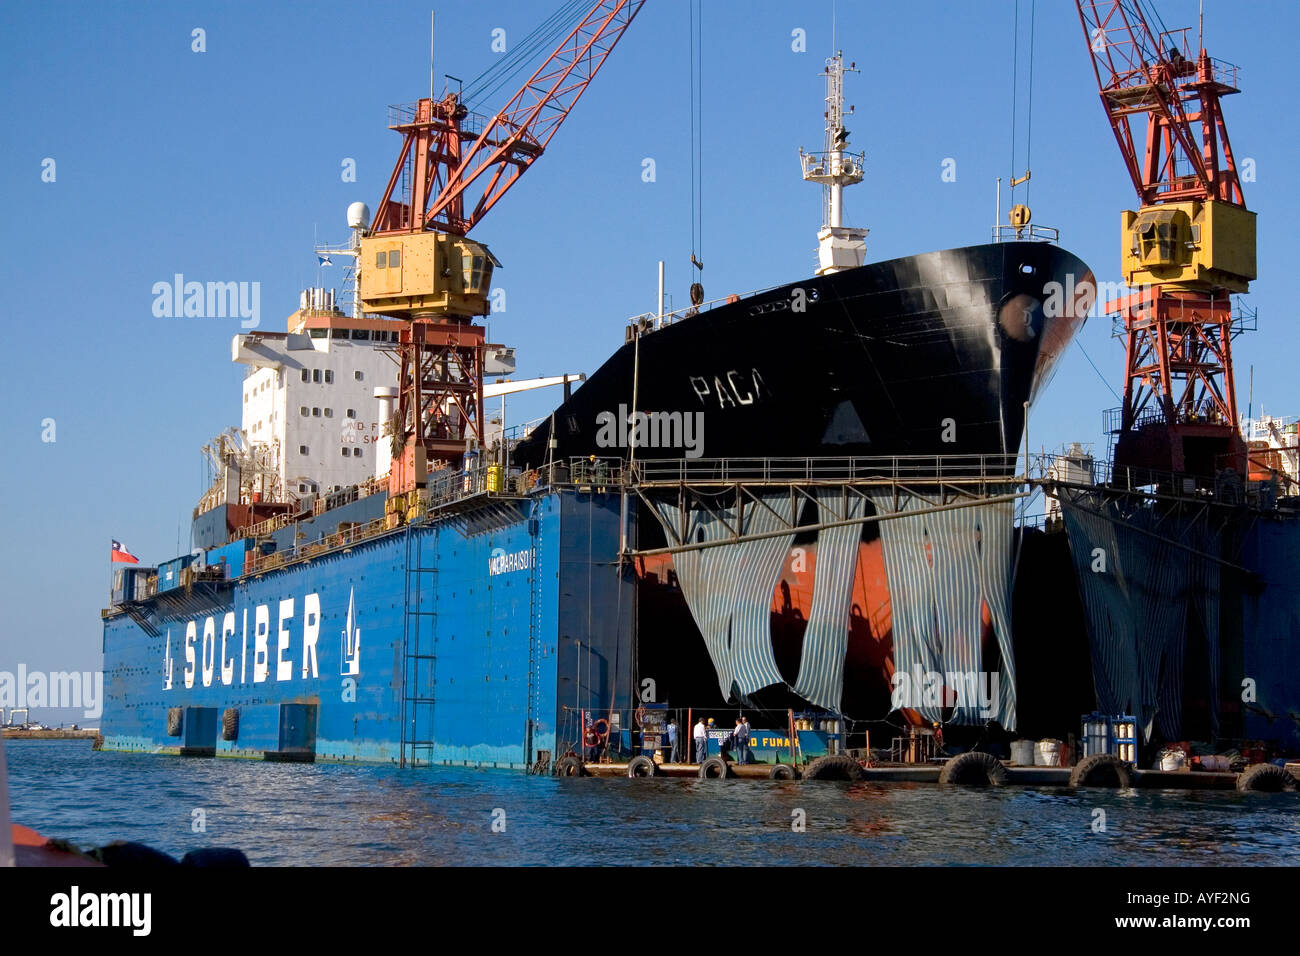 Floating dry dock with container ship in the Port at Valparaiso Chile Stock Photo